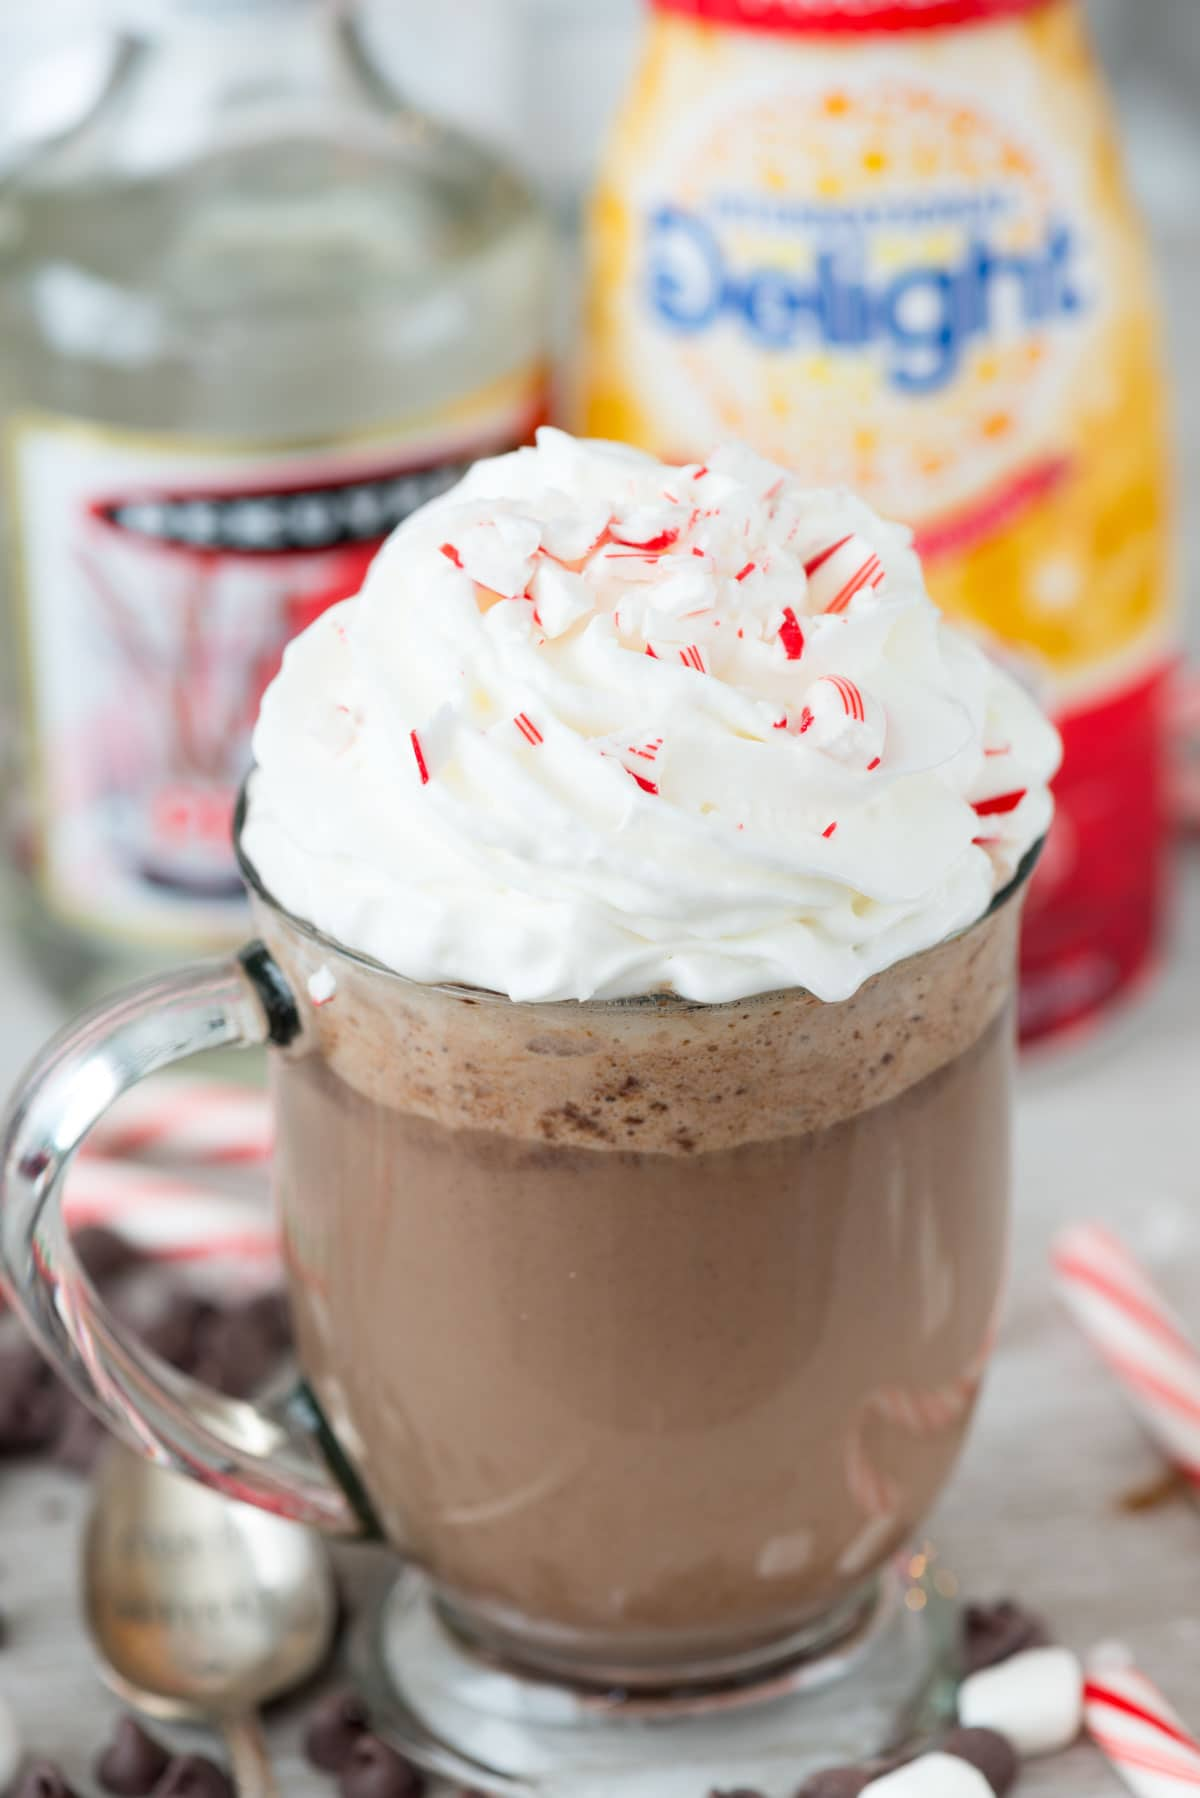 Peppermint Mocha Snuggler - an easy cocktail recipe made in the crockpot! Simple hot chocolate filled with peppermint mocha coffee creamer, espresso, and peppermint schnapps.